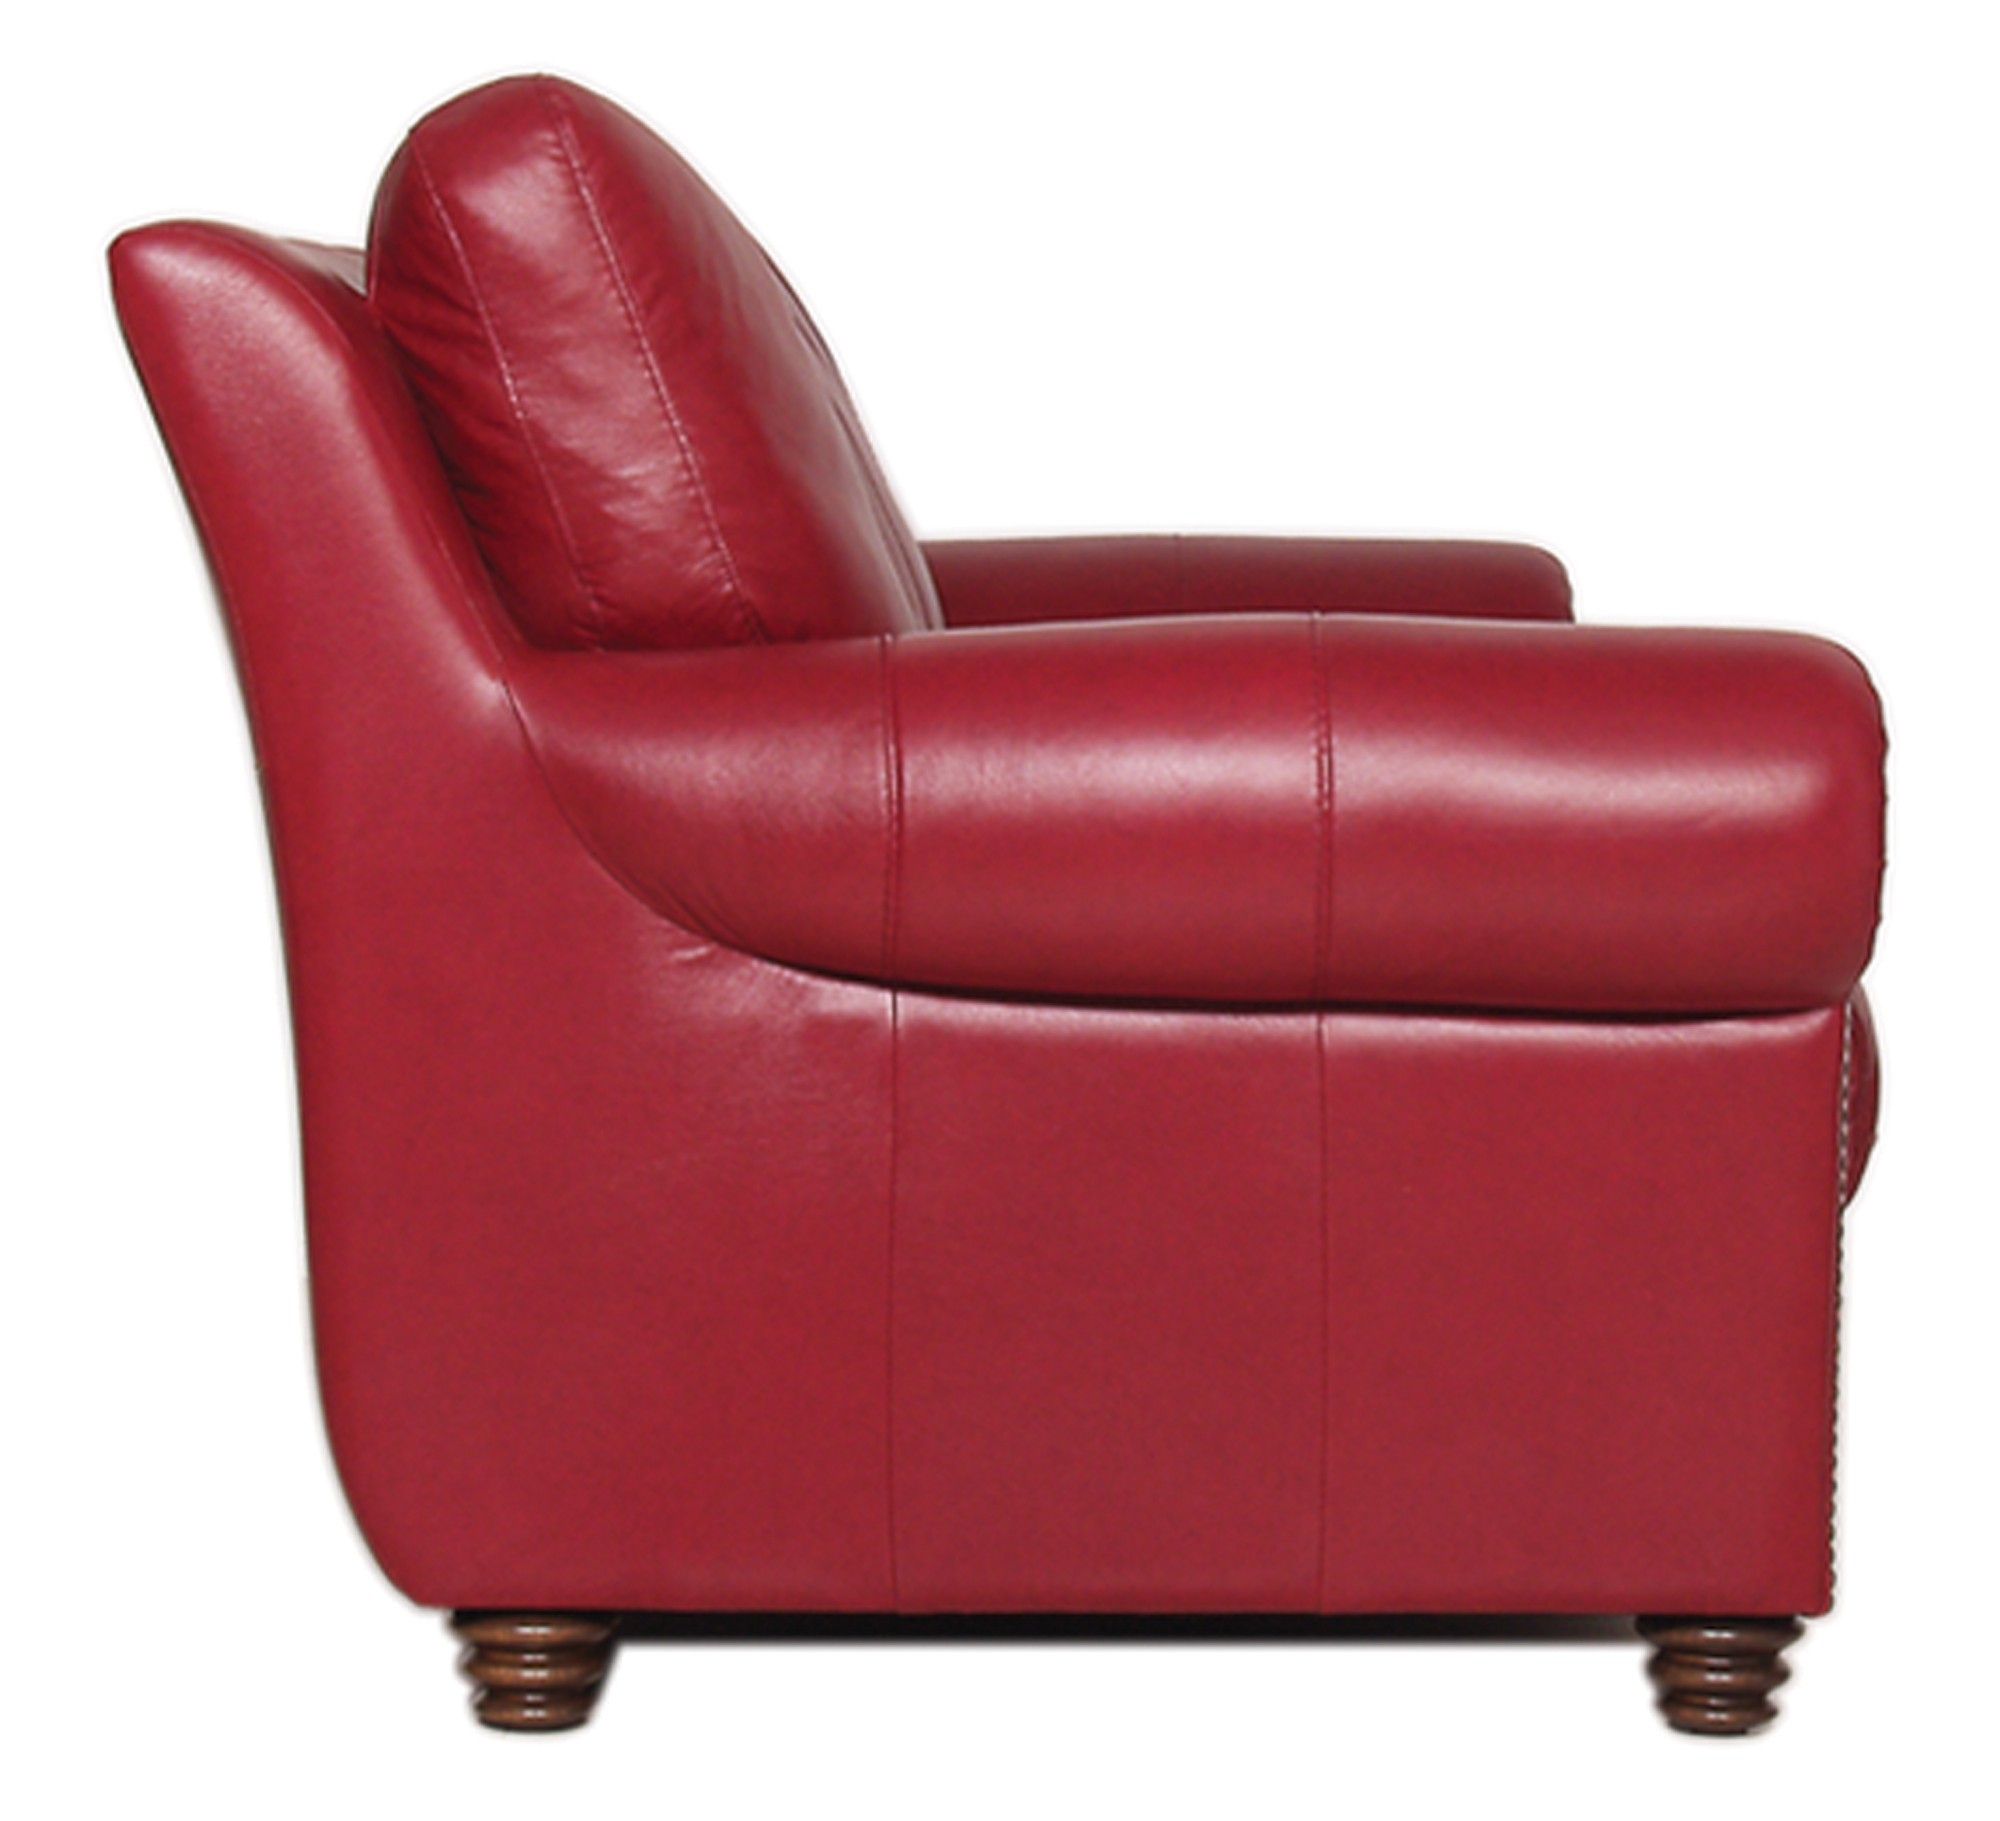 Luke Leather Furniture Weston Collection In Colorful Sofas And Chairs (Image 10 of 15)